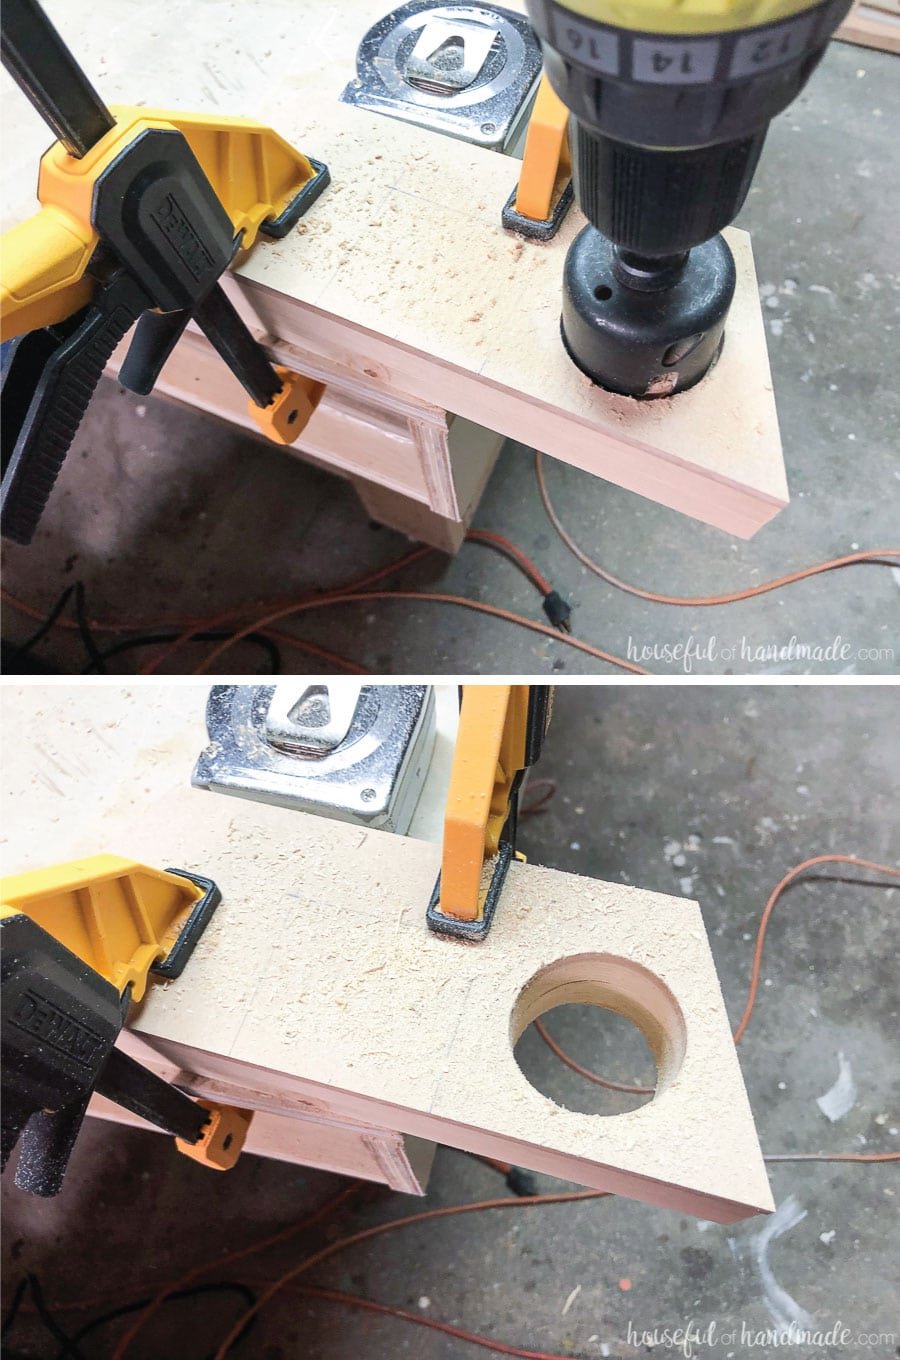 Drilling the holes in three of the boards of the wooden speaker for phone.